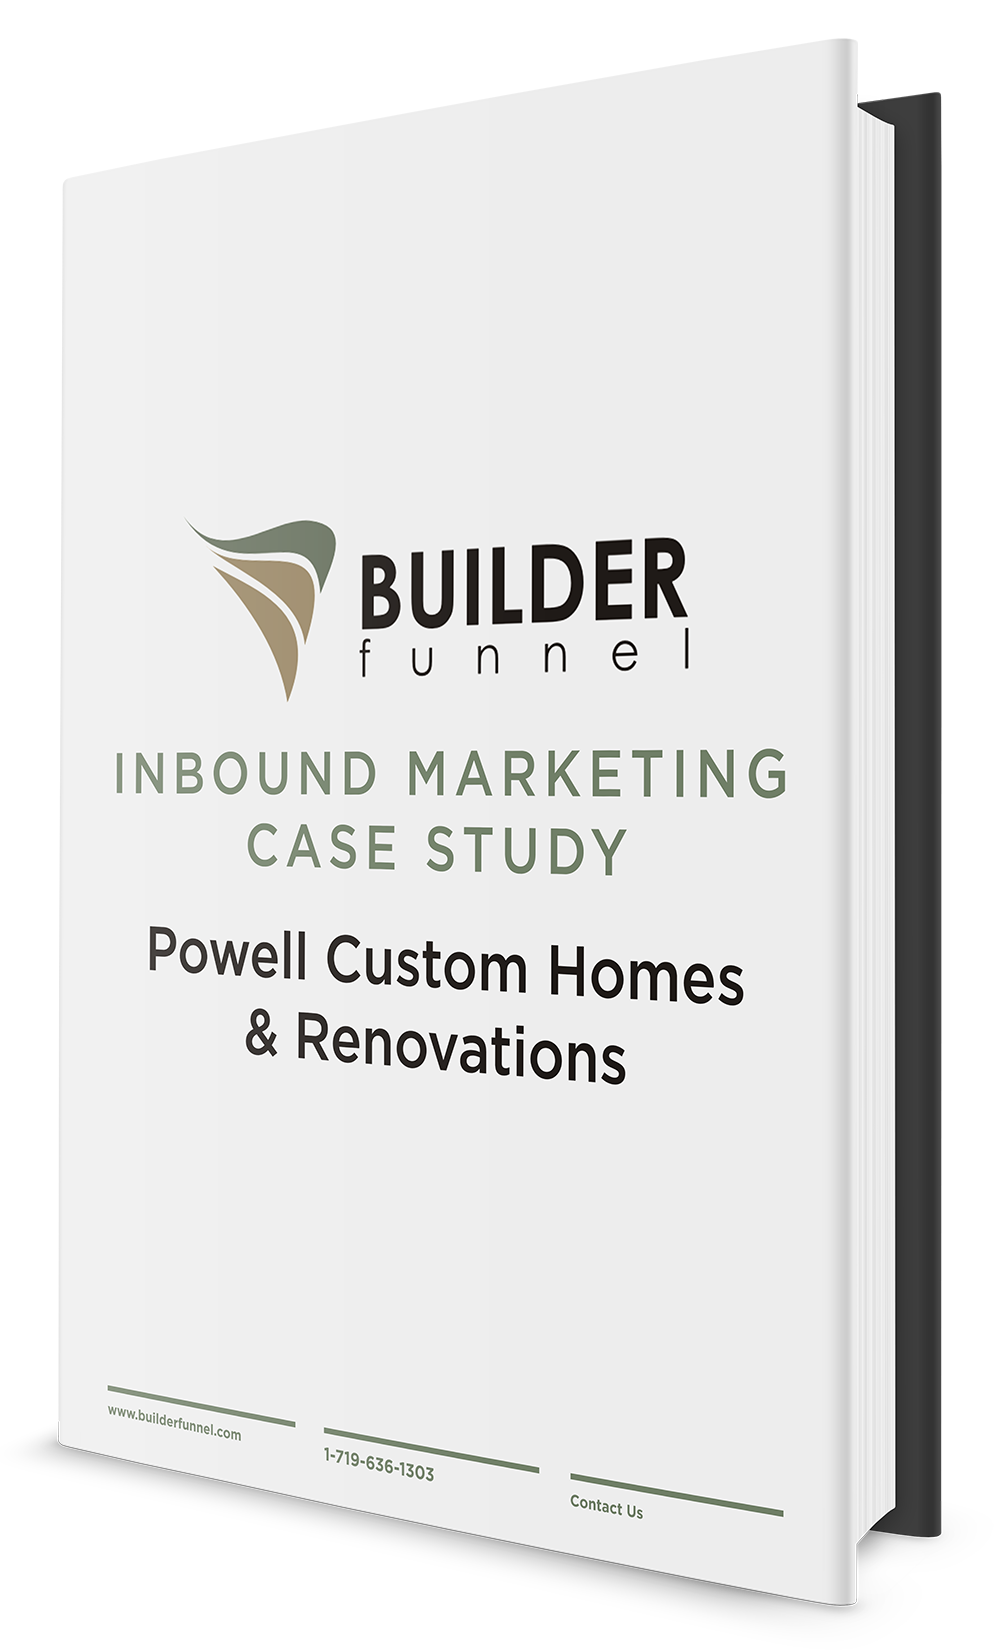 inbound-marketing-case-study-powell-custom-homes-and-renovations-ebook.png